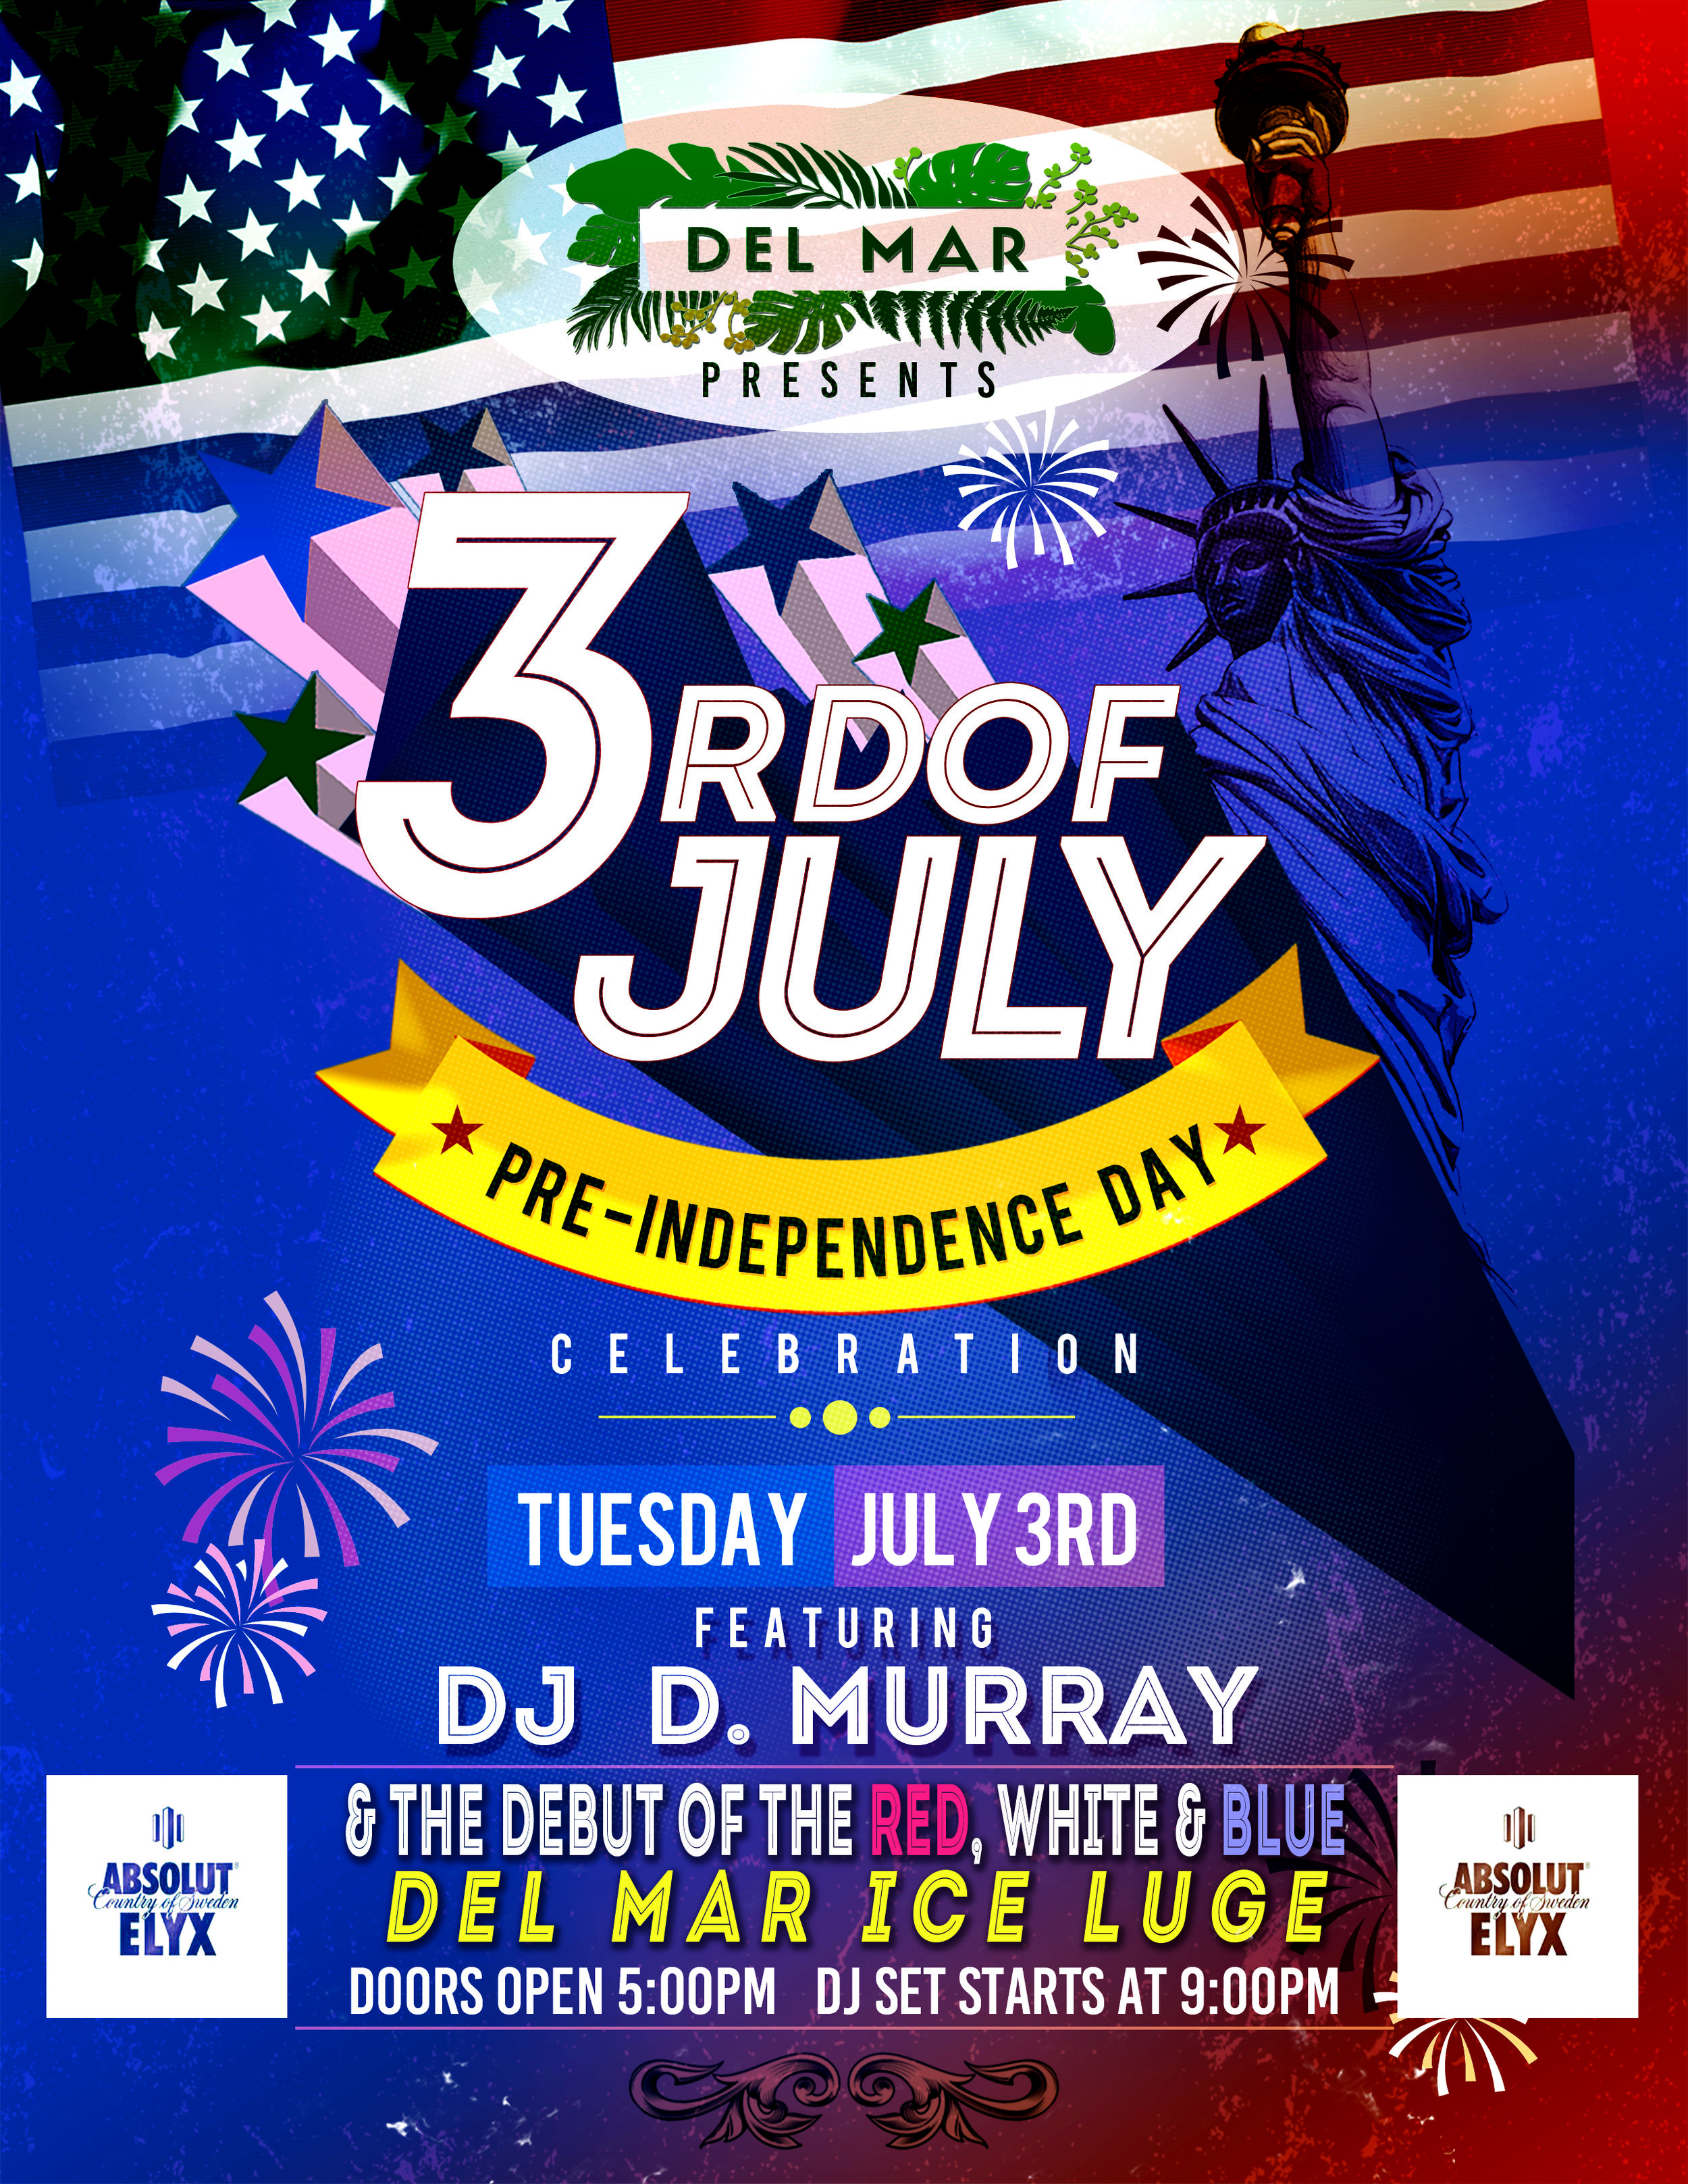 3rd of July Flyer absolut elyx.jpg